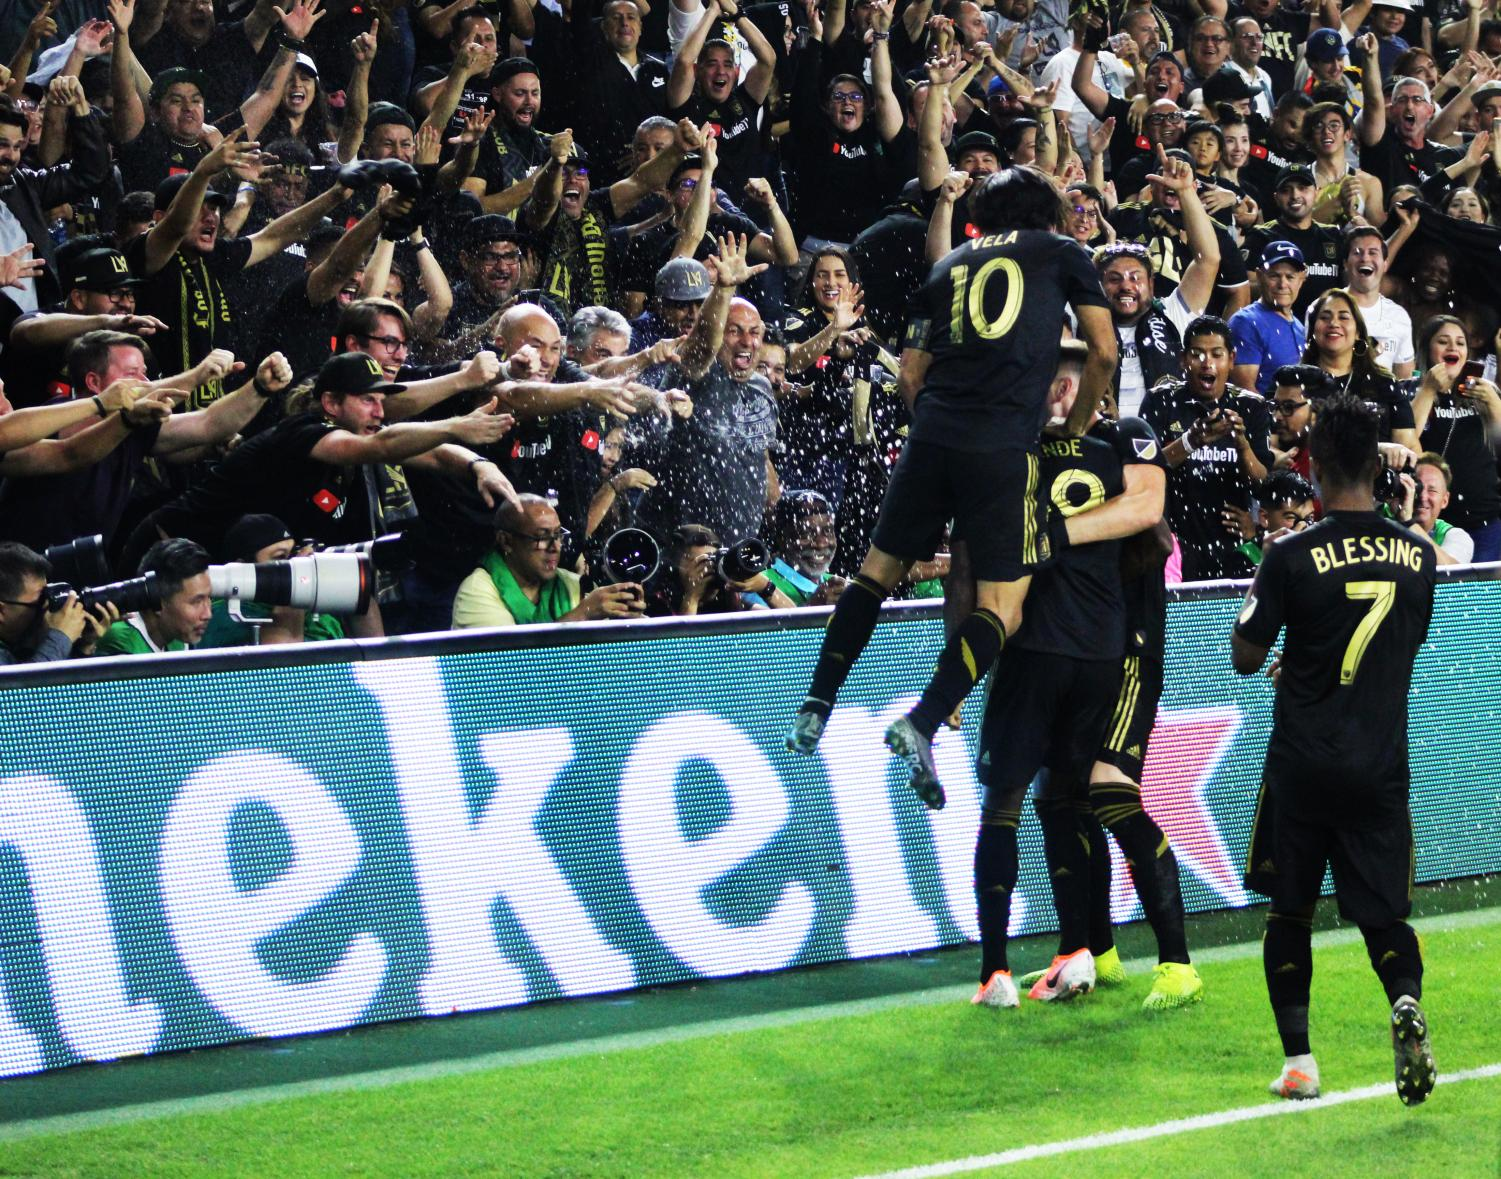 LAFC fans celebrate at the Banc of California Stadium as forward Amade Diamande nets his brace. The black and gold grabbed their first playoff win against the LA Galaxy on Thursday night with a score of 5-3